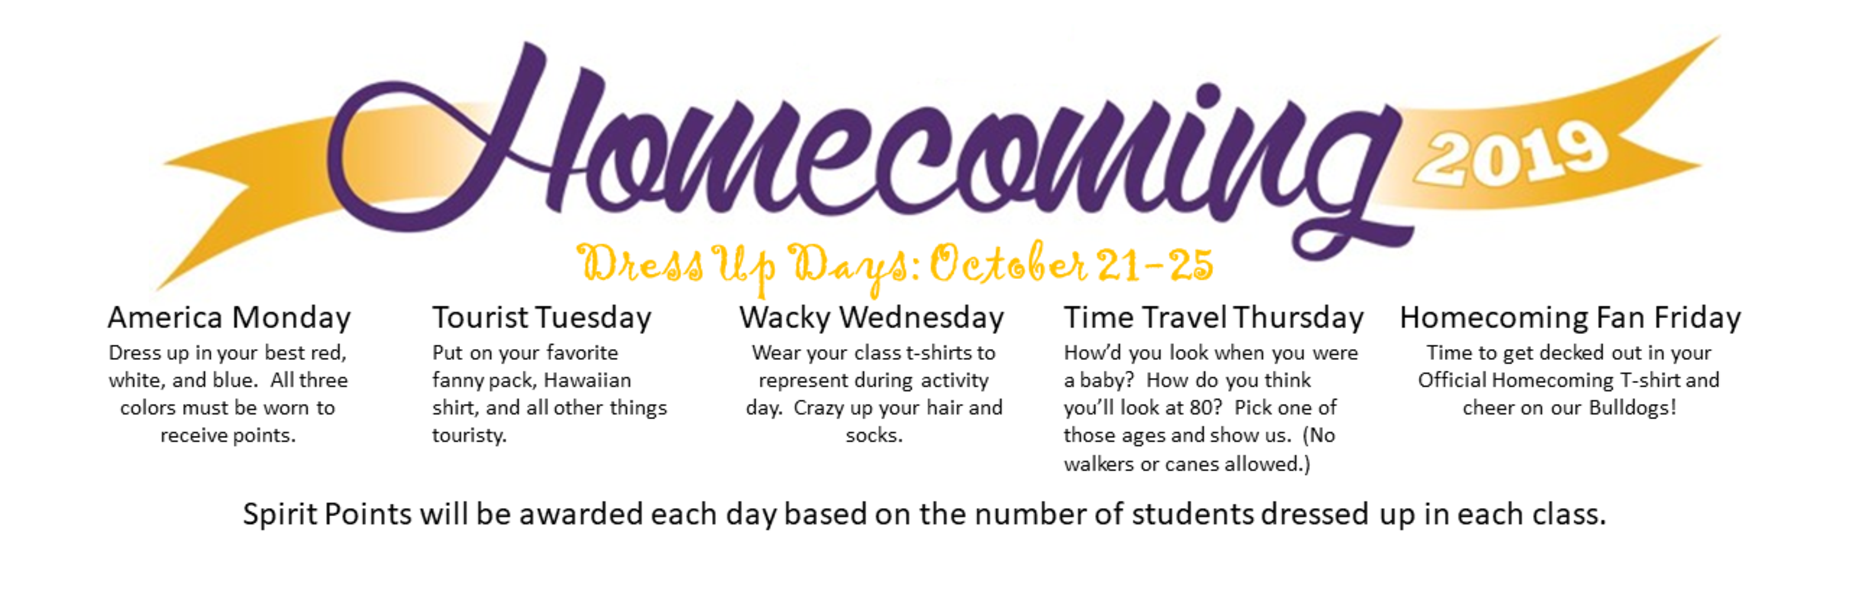 Homecoming 2019 Dress Up Days October 21-25; America Monday - Dress up in your best red, white, and blue.  All three colors must be worn to receive points; Tourist Tuesday - Put on your favorite fanny pack, Hawaiian shirt, and all other things touristy; Wacky Wednesday - Wear your class t-shirts to represent during activity day.  Crazy up your hair and socks; Time Travel Thursday - How'd you look when you were a baby?  How do you think you'll look at 80?  Pick one of those ages and show us.  (No walkers or canes allowed.); Homecoming Fan Friday - Time to get decked out in your Official Homecoming t-shirt and cheer on our bulldogs.  Spirit Points will be awarded each day based on the number of students dressed up in each class.